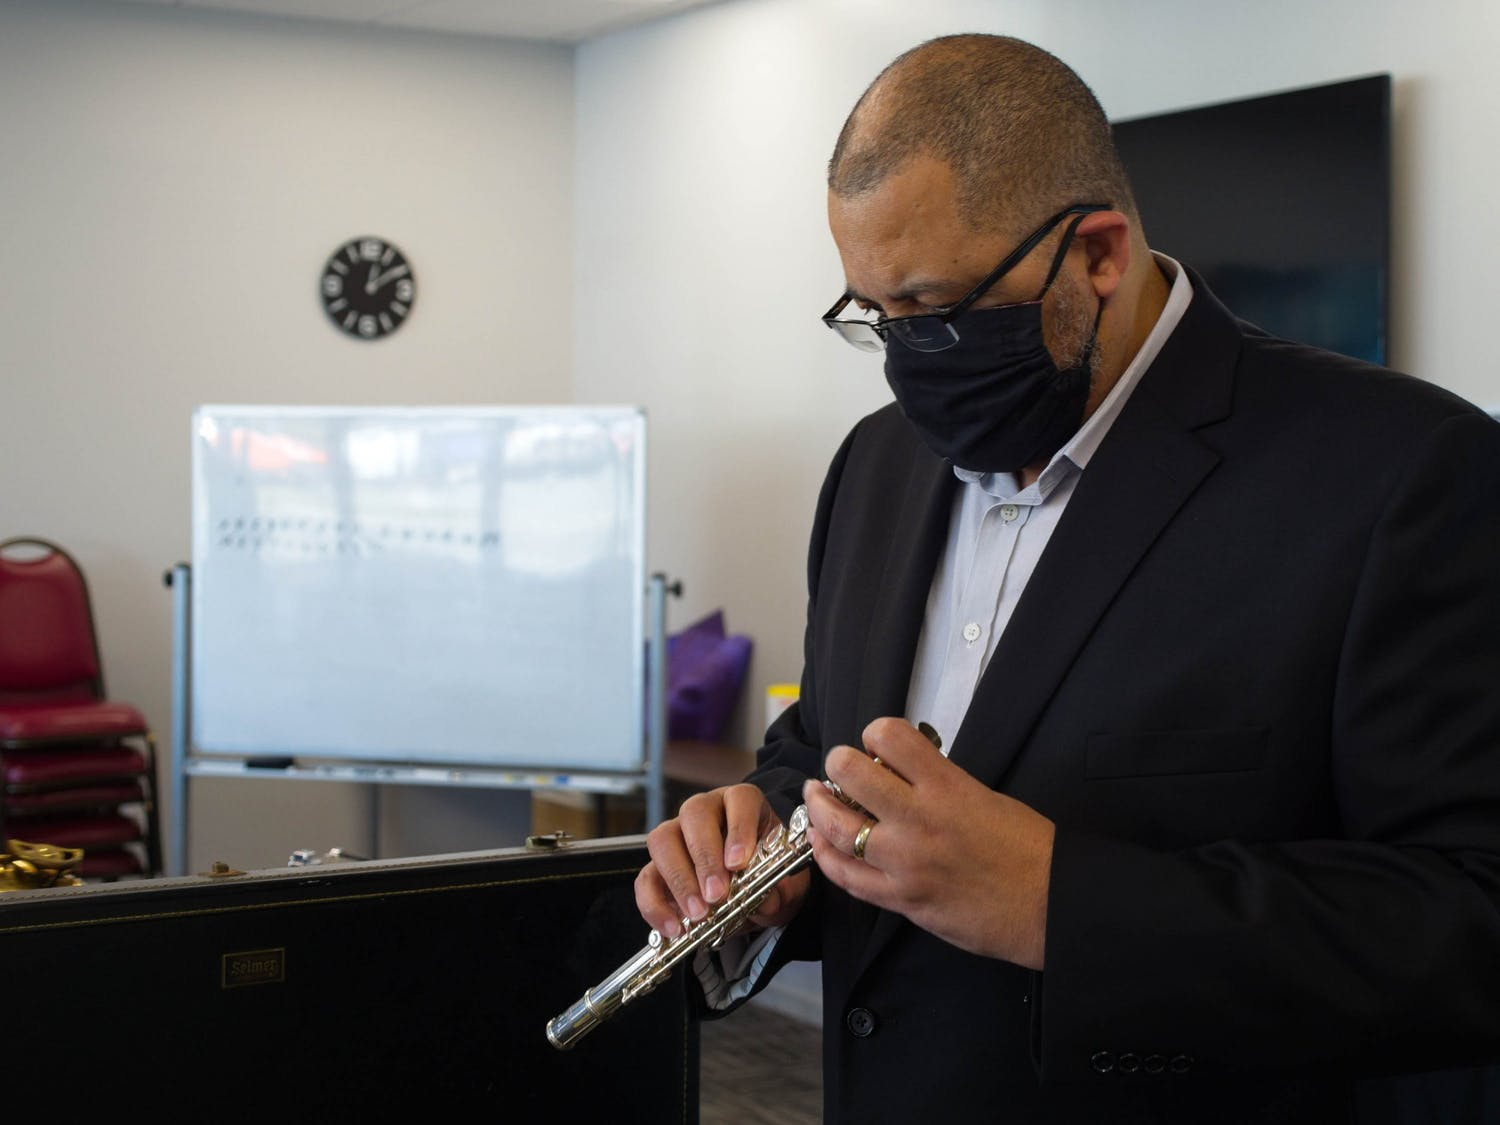 Ralph Barrett, an Assistant Professor of NC Central University's Music Department, examines a donated flute in the YouthWorx conference room on Wednesday, Dec. 9, 2020. Barrett is a member of Musical Empowerment's Board of Directors.